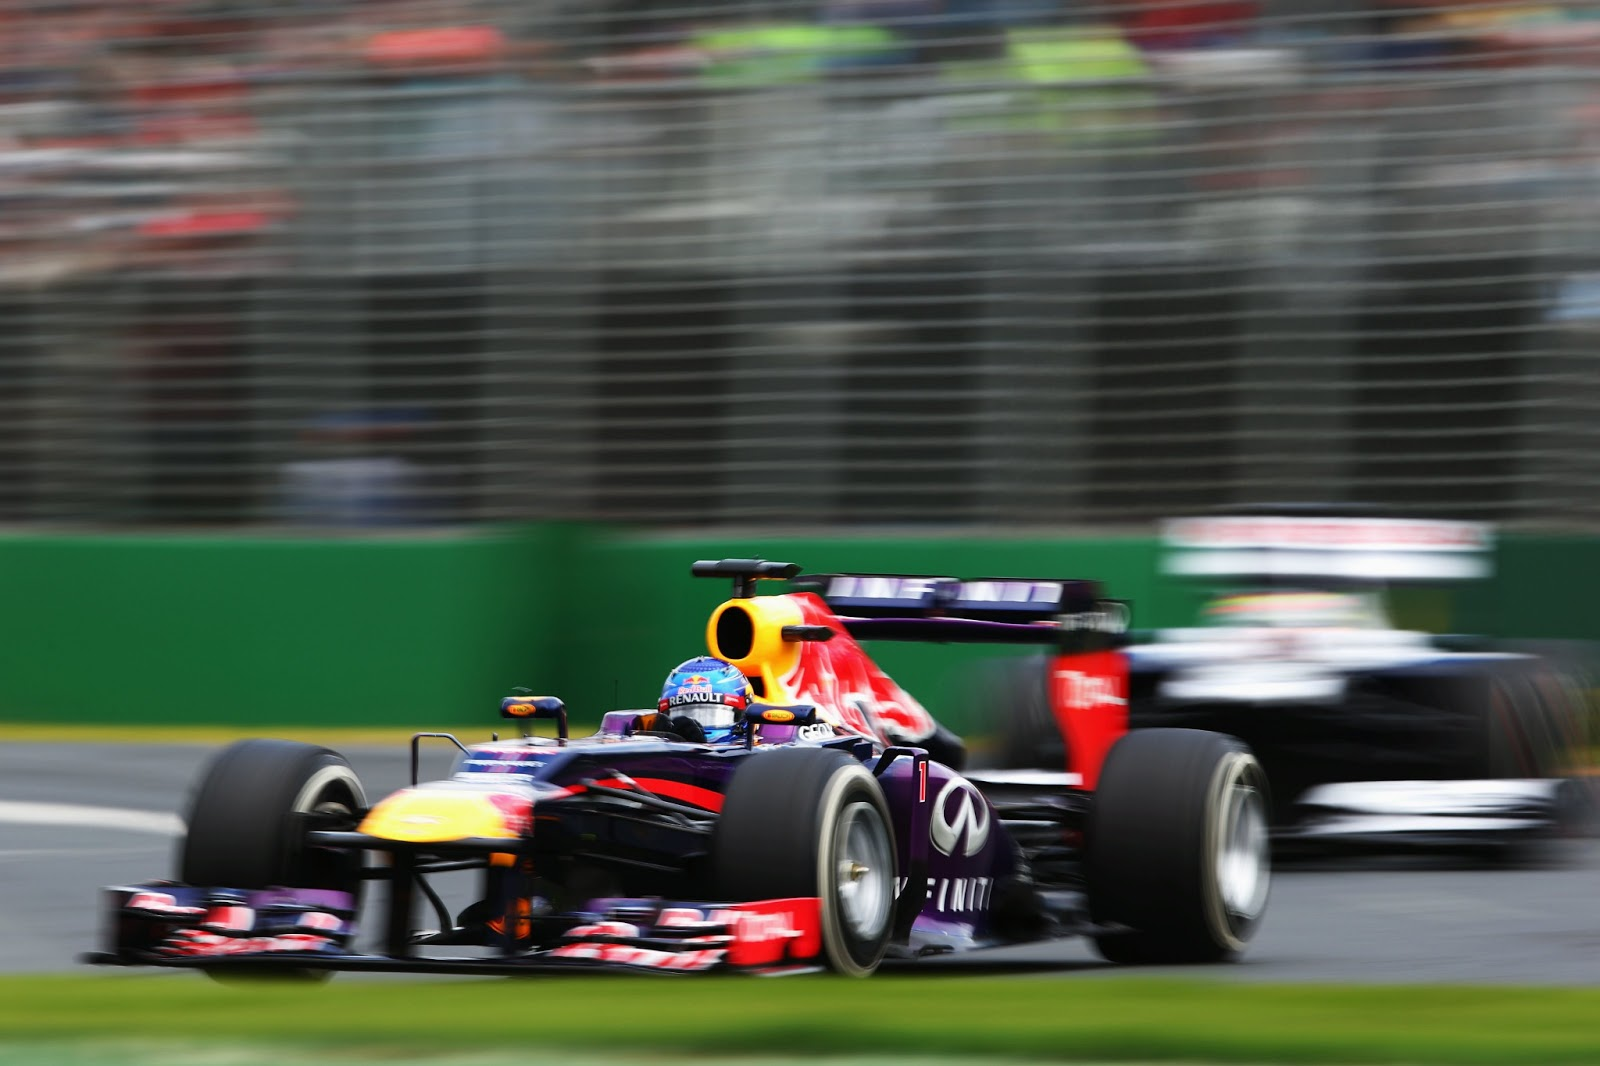 itc racing infiniti red bull racing f1 team information australian grand prix race report. Black Bedroom Furniture Sets. Home Design Ideas